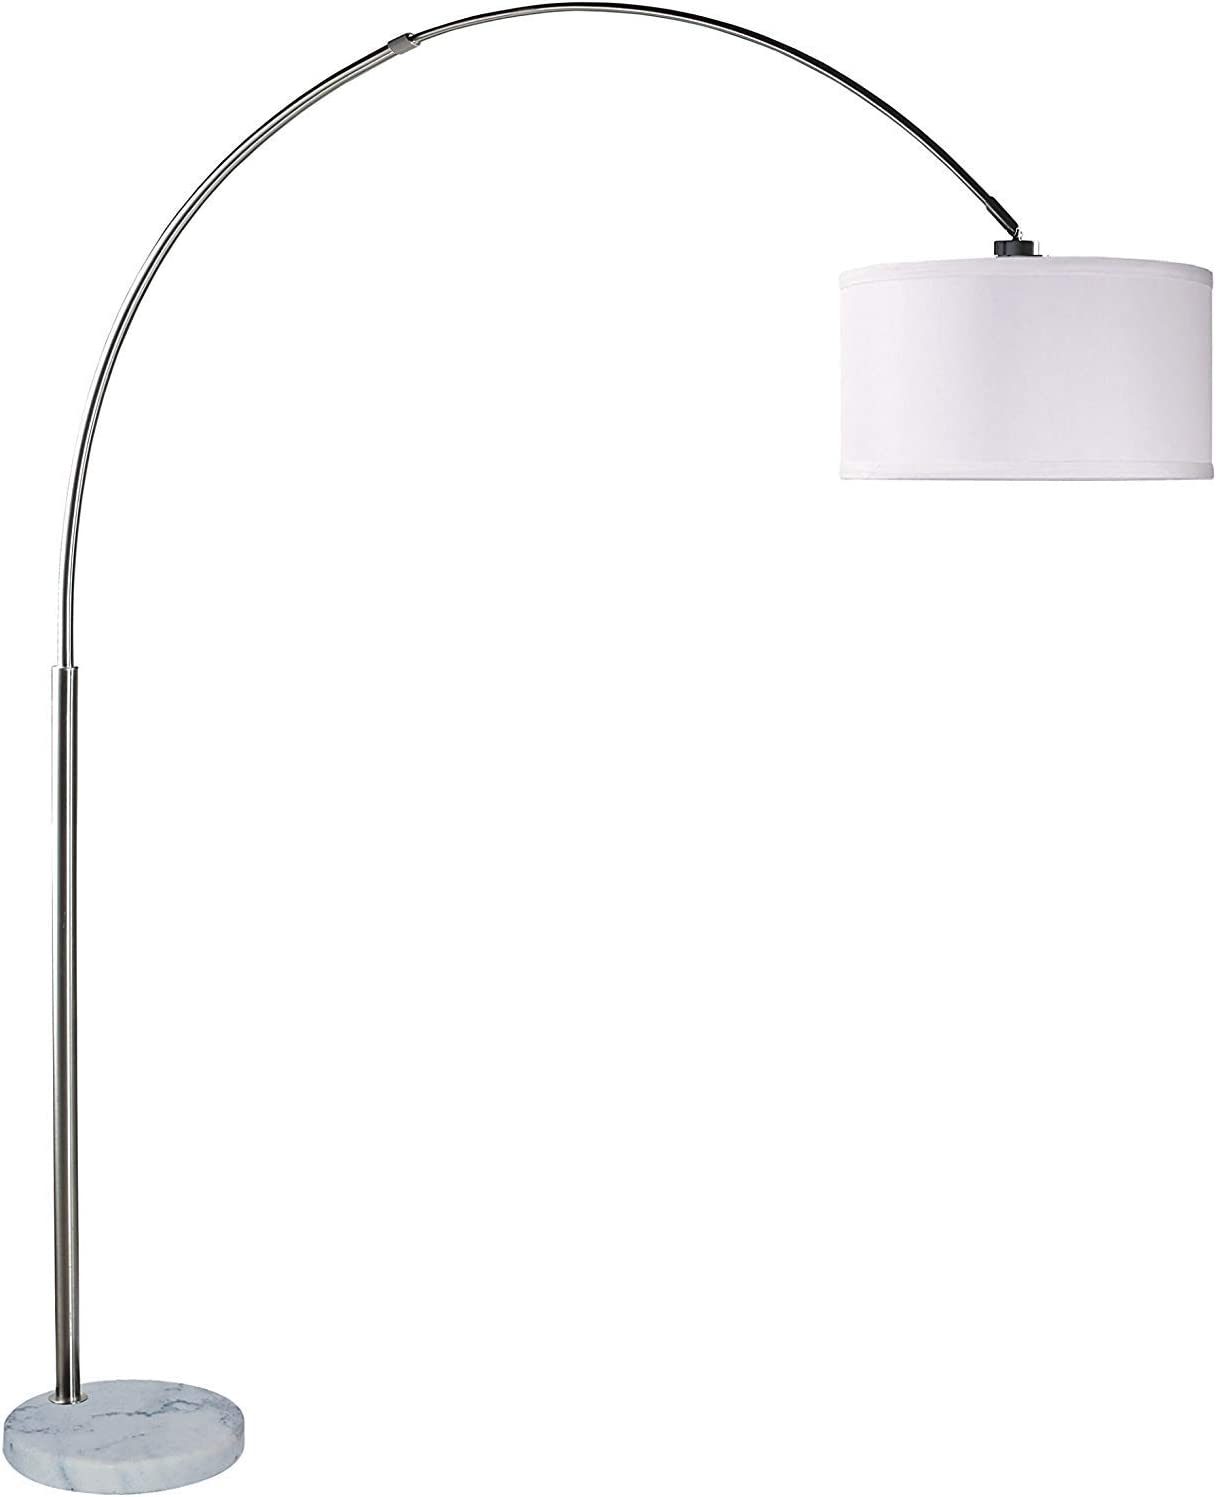 SH Lighting 6938 Brush Steel Arching with Lamp Super sale period limited Max 63% OFF Marbl Floor White